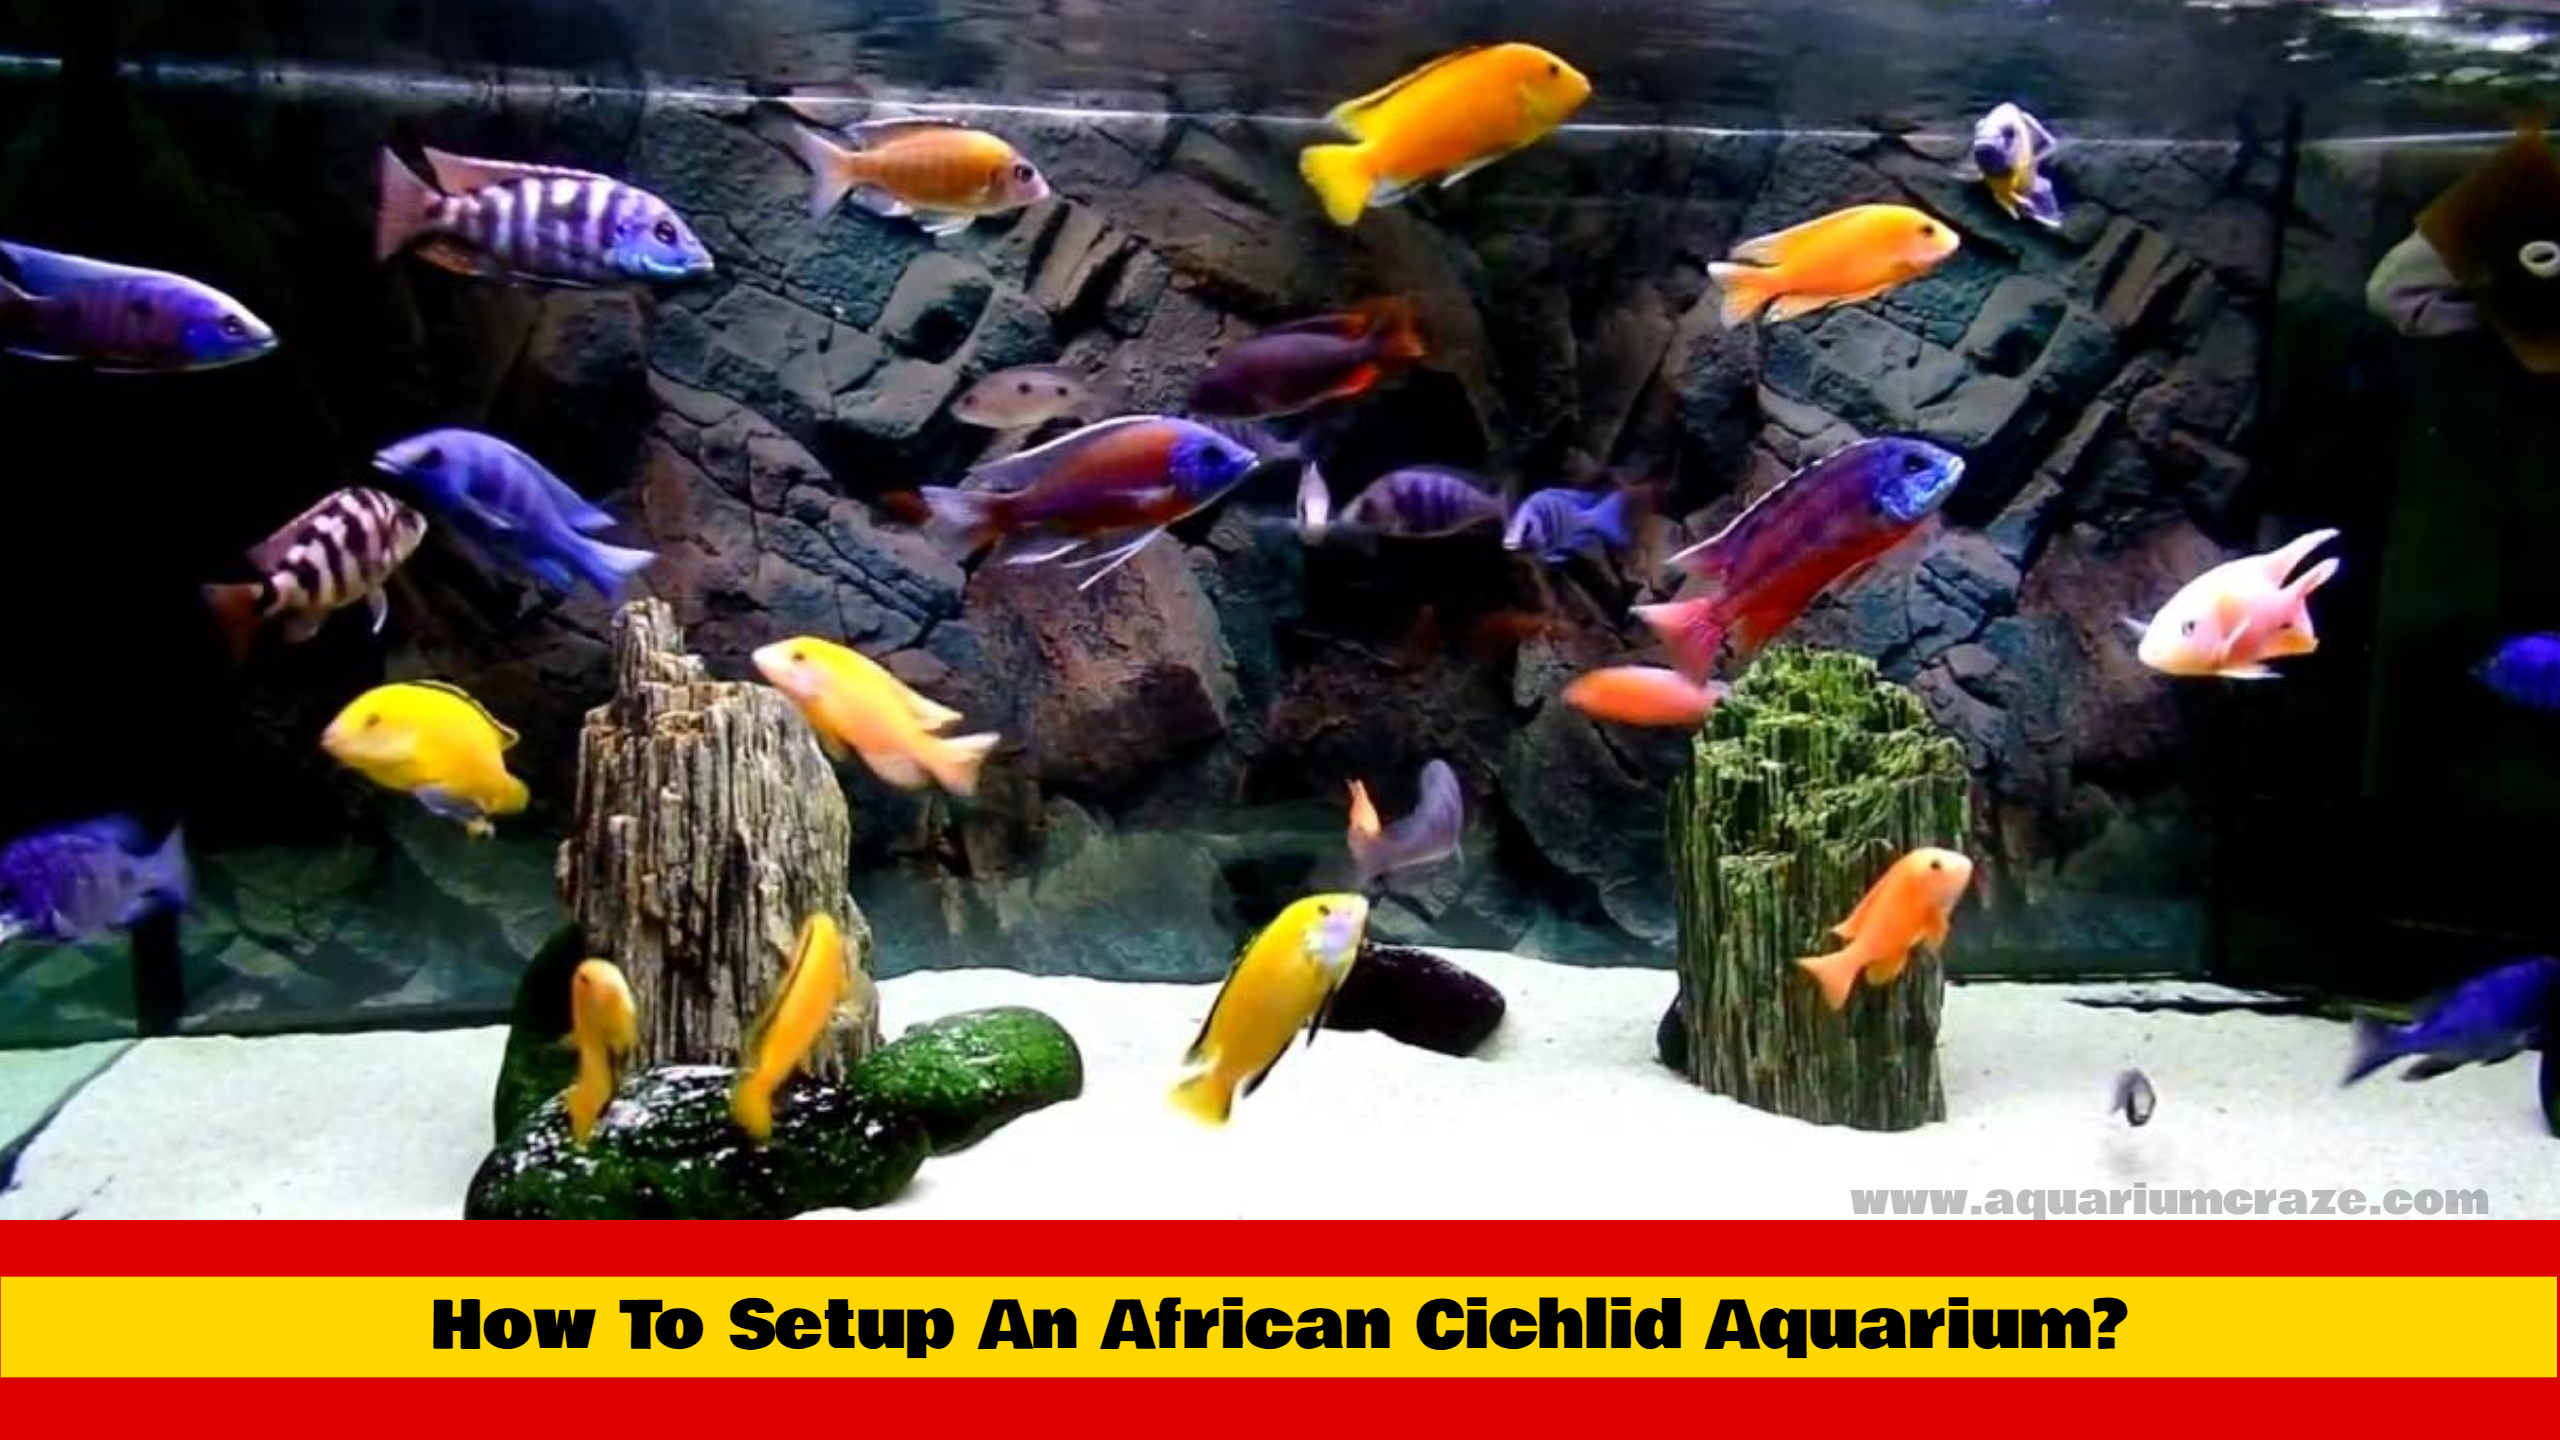 How To Setup An African Cichlid Aquarium?